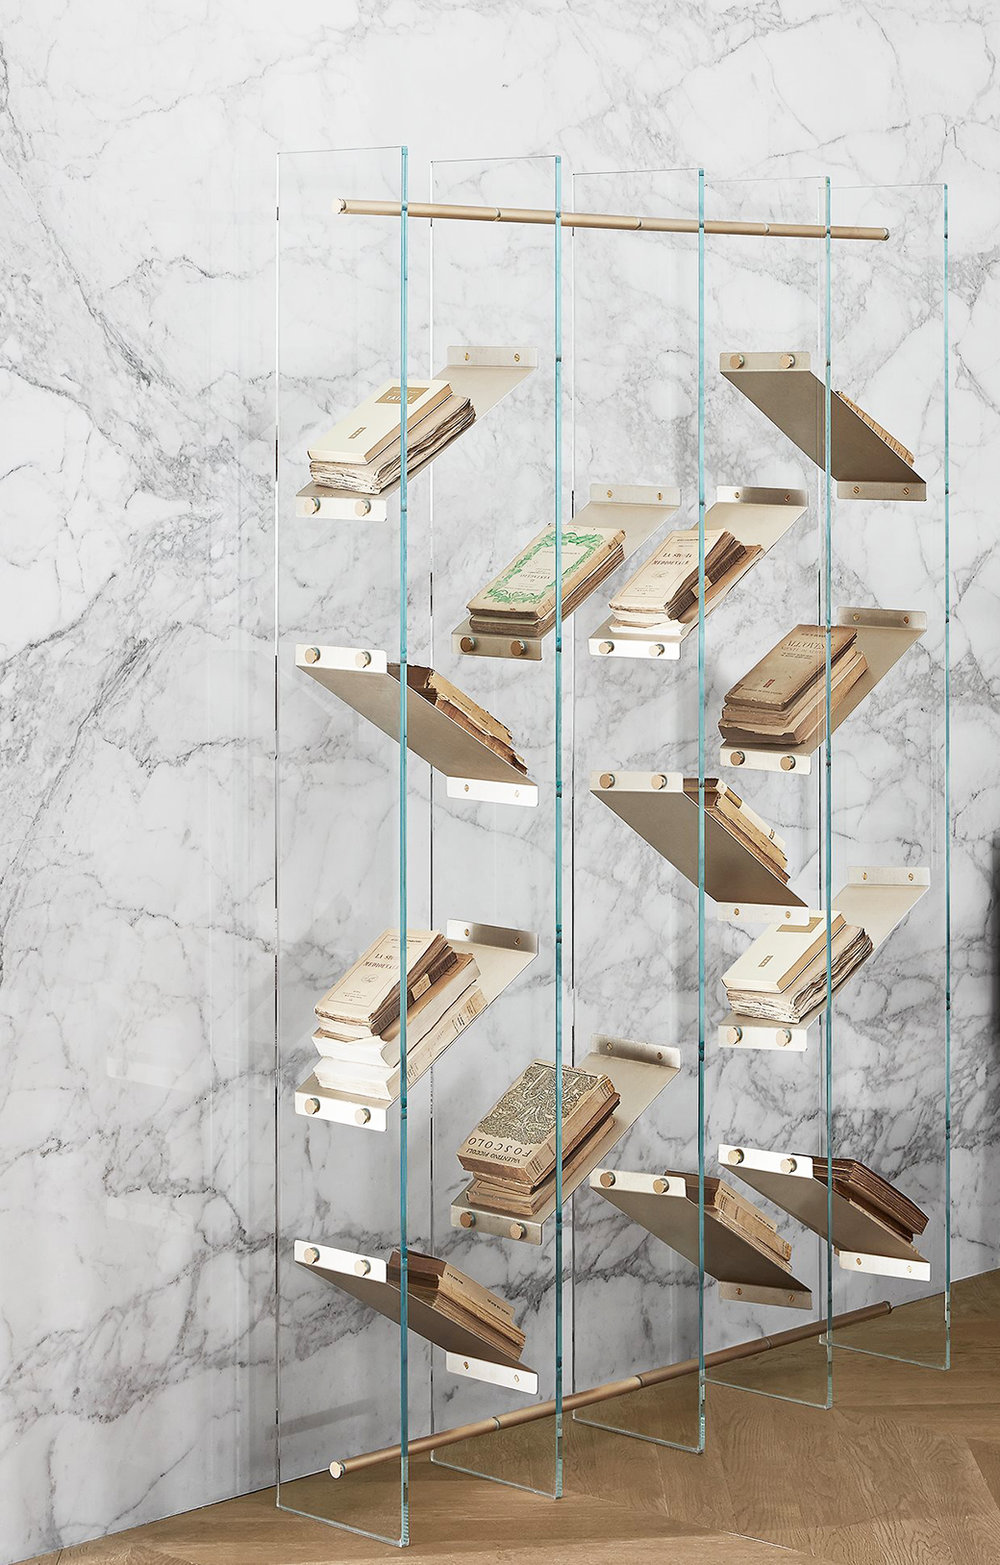 Isola Shelving System From GallottiRadice Which Just Won The Wallpaper Design Award